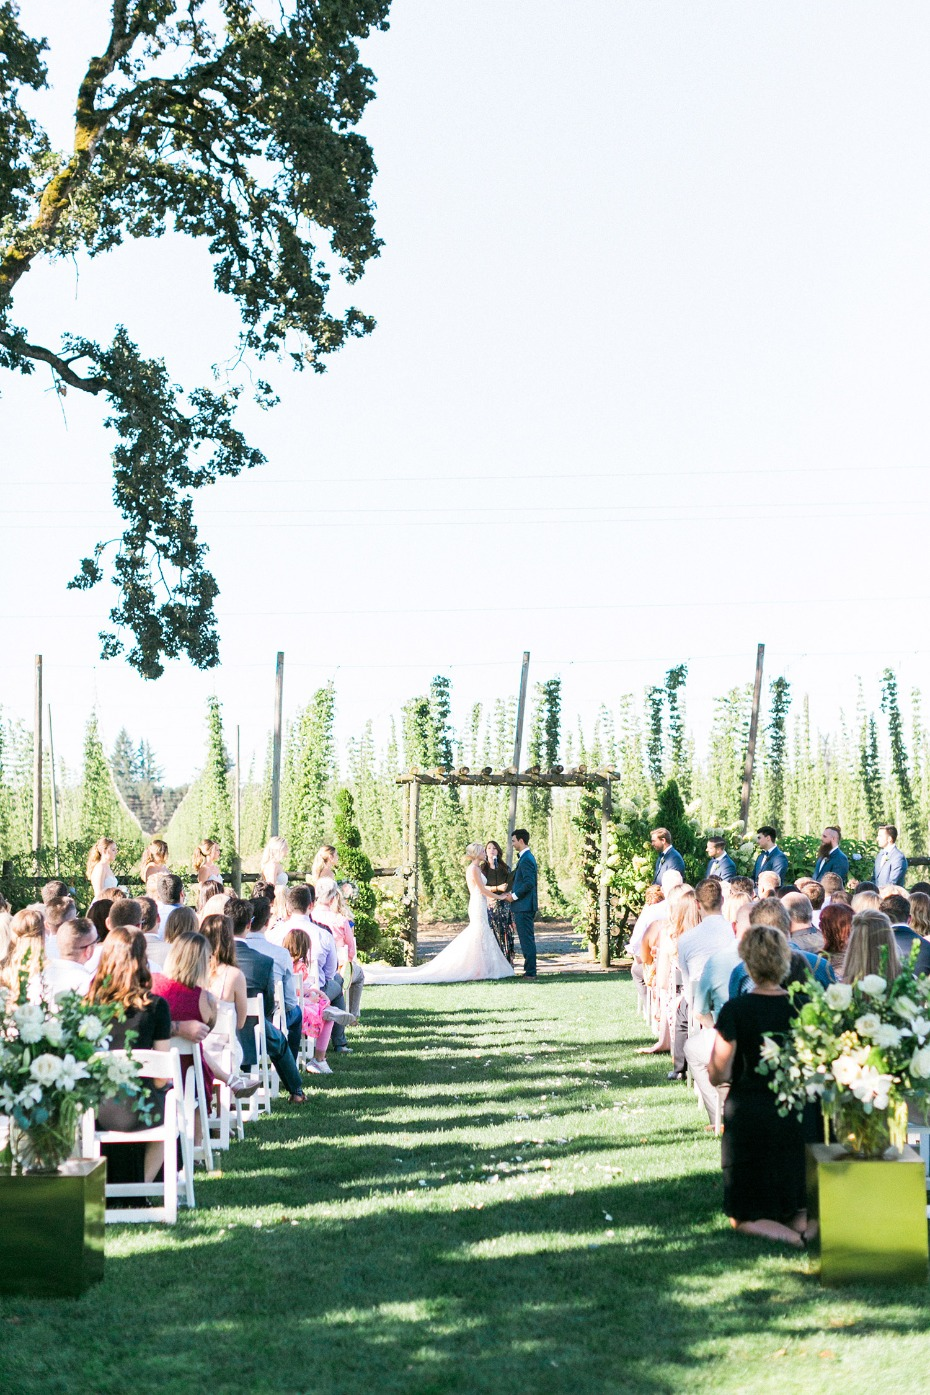 Hops farm ceremony in Oregon